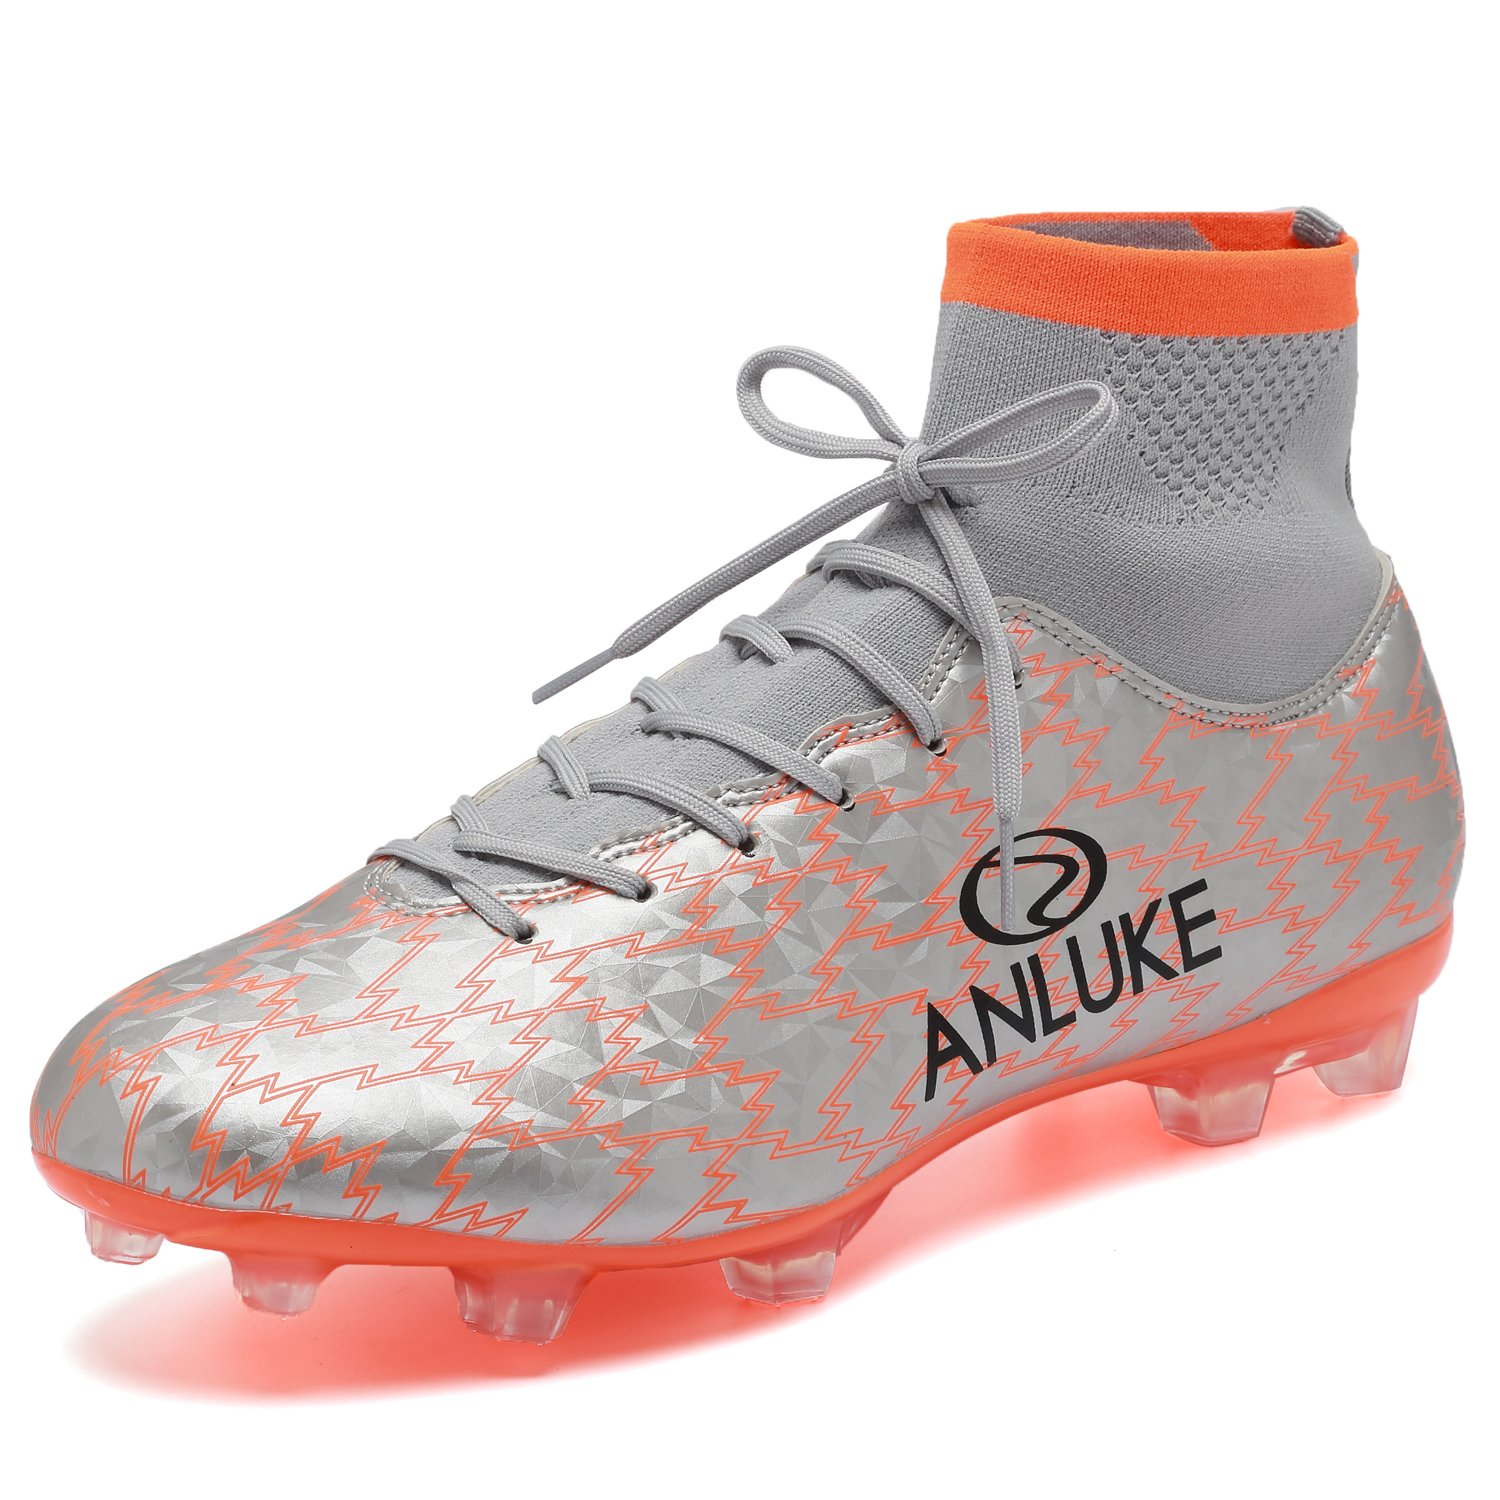 ANLUKE Mens Athletic Hightop Cleats Soccer Shoes Football Team Turf